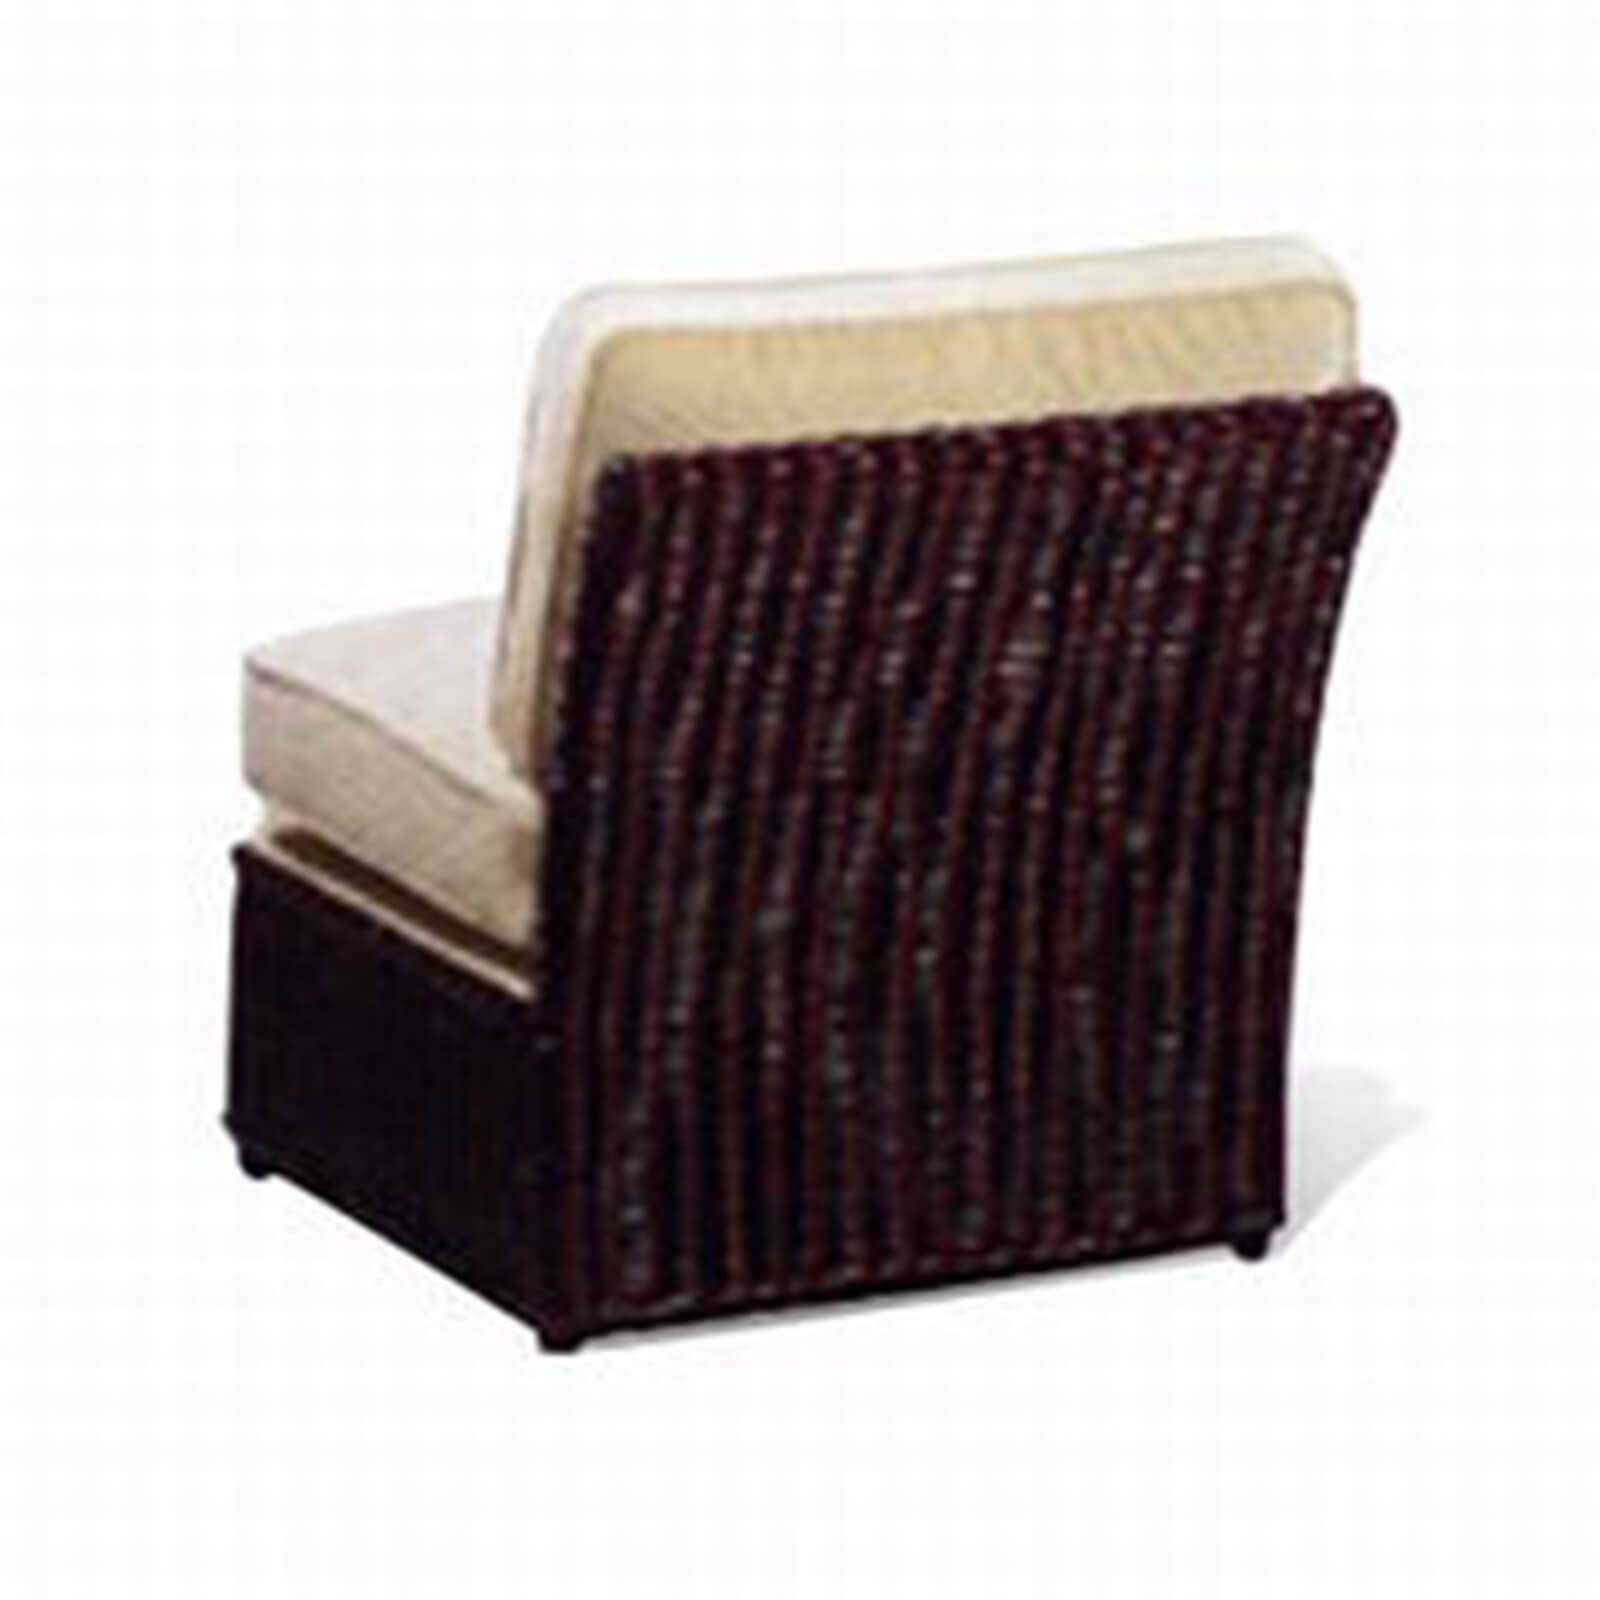 WICKER SLIPPER CHAIR 3 - STUART MEMBERY HOME COLLECTION